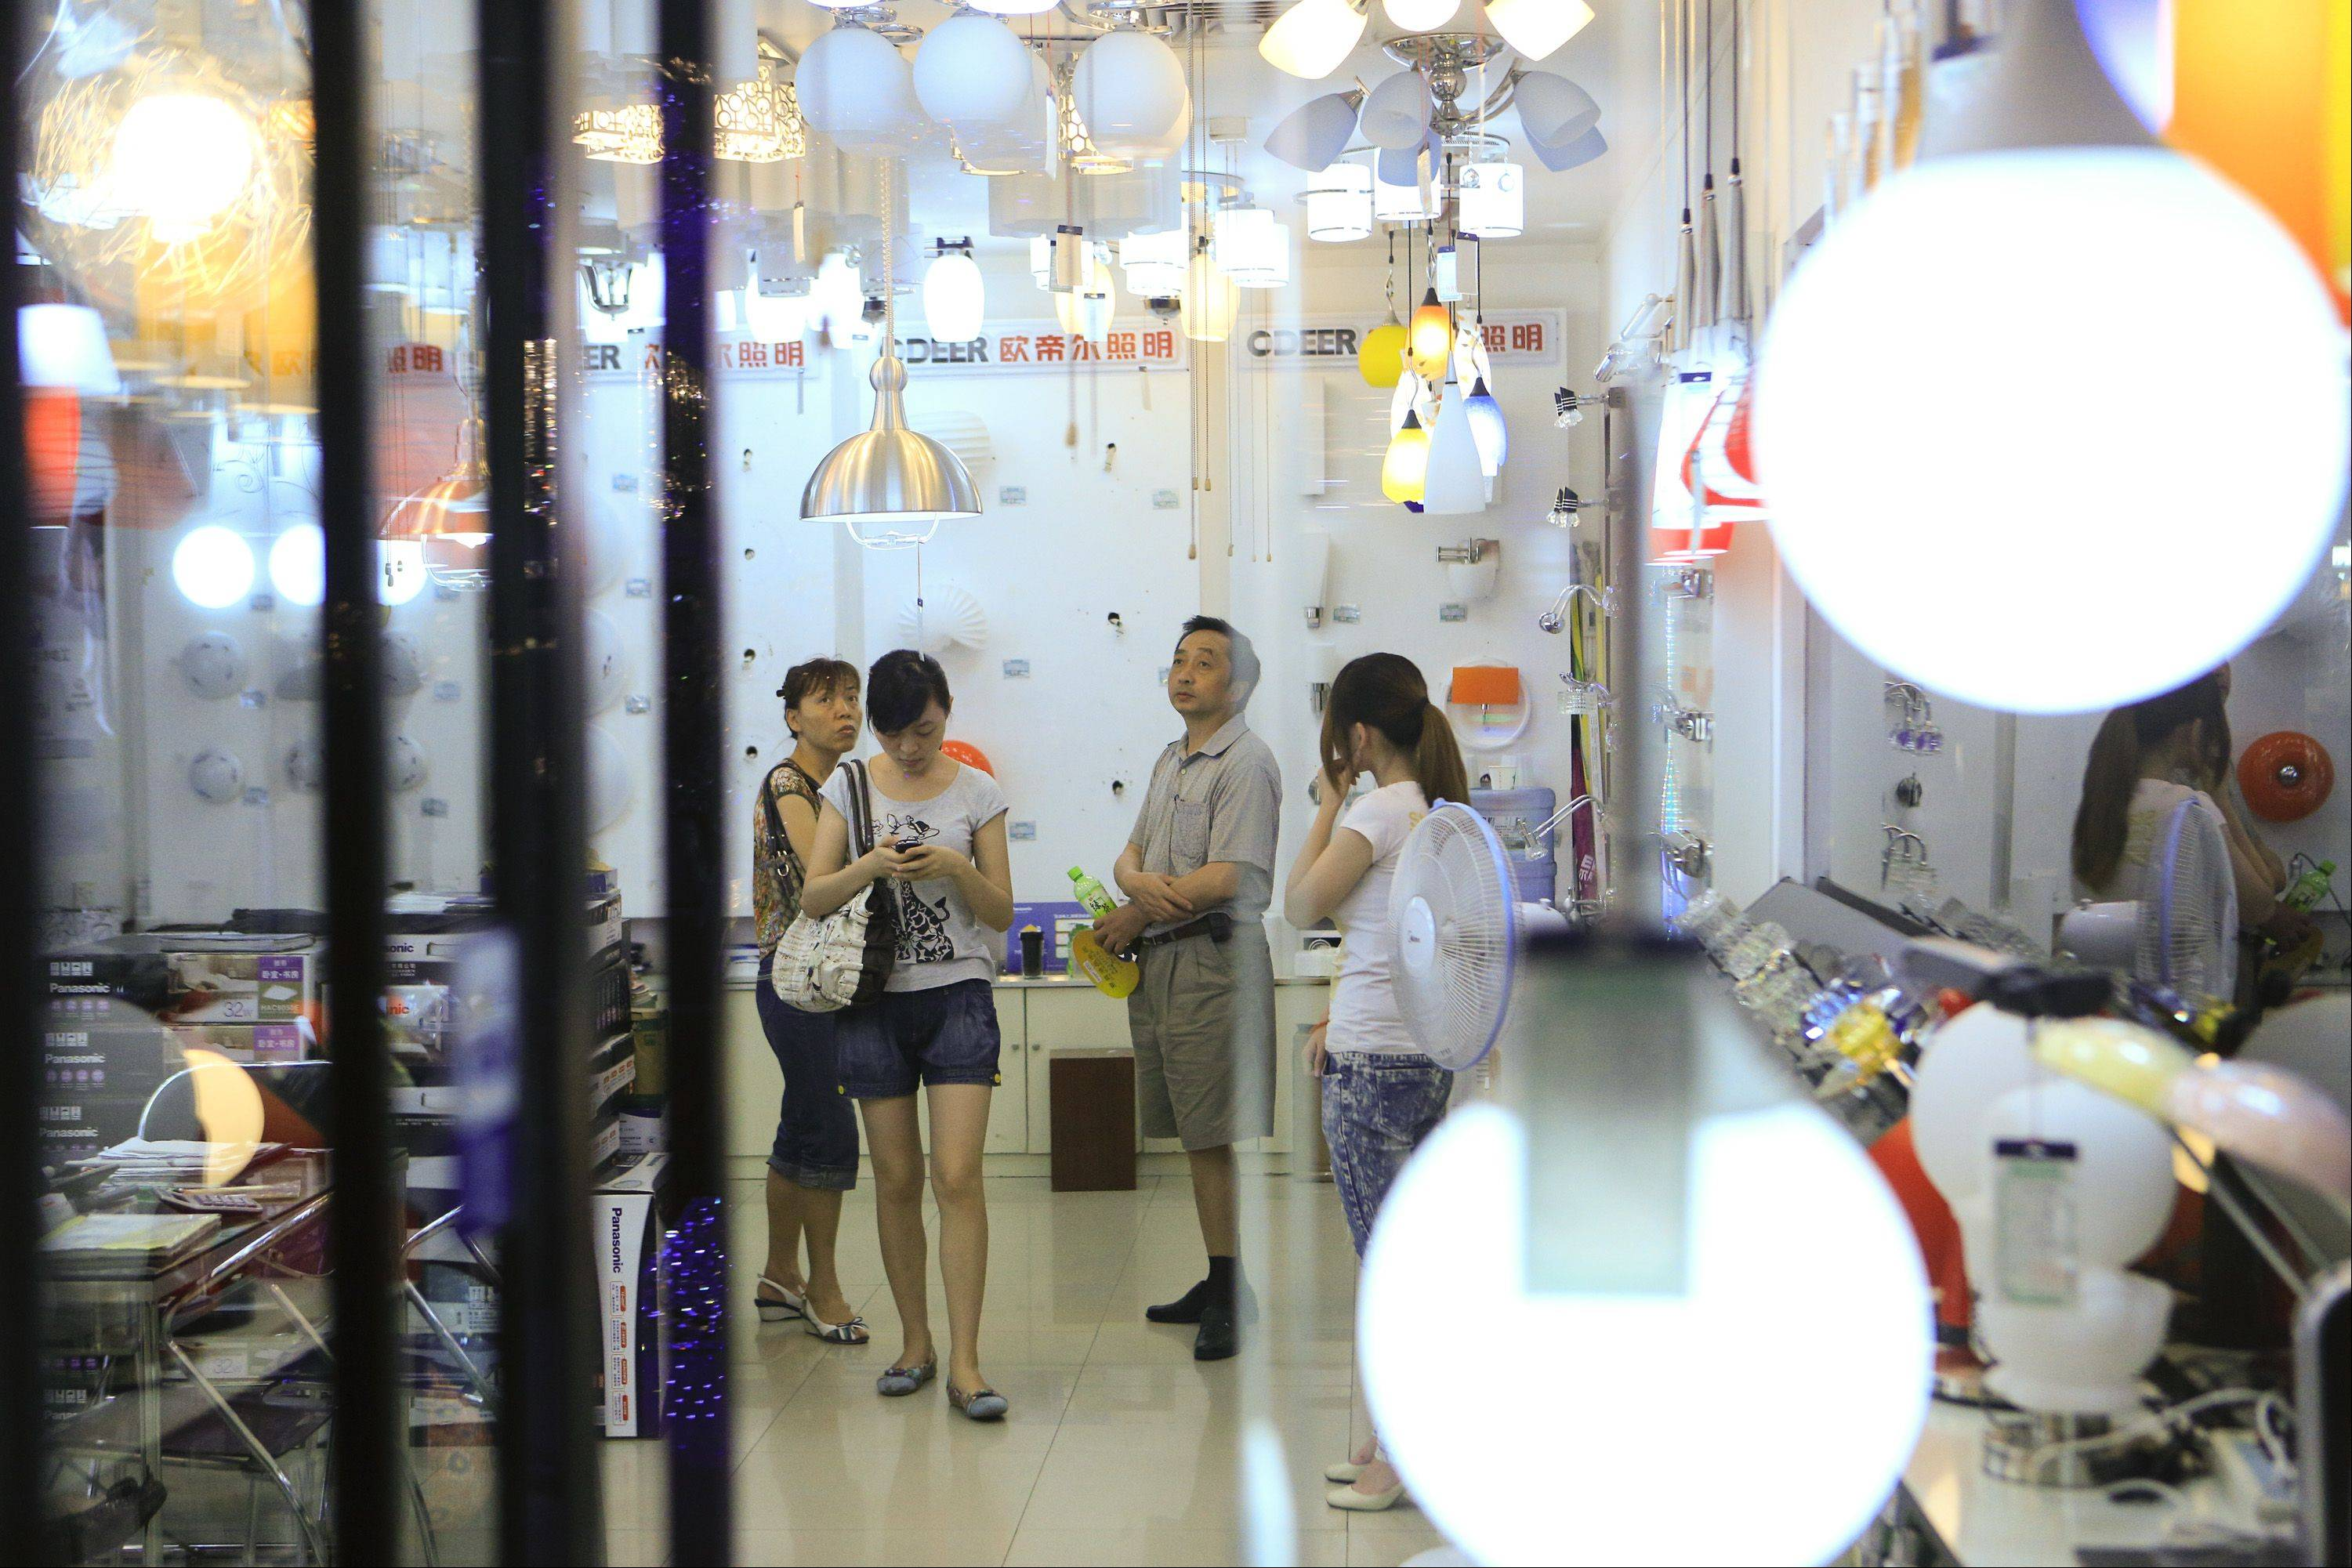 Customers shop for lighting at a home furnishing store Tuesday in Beijing, China. China's economy, the world's second biggest, is producing more millionaires.